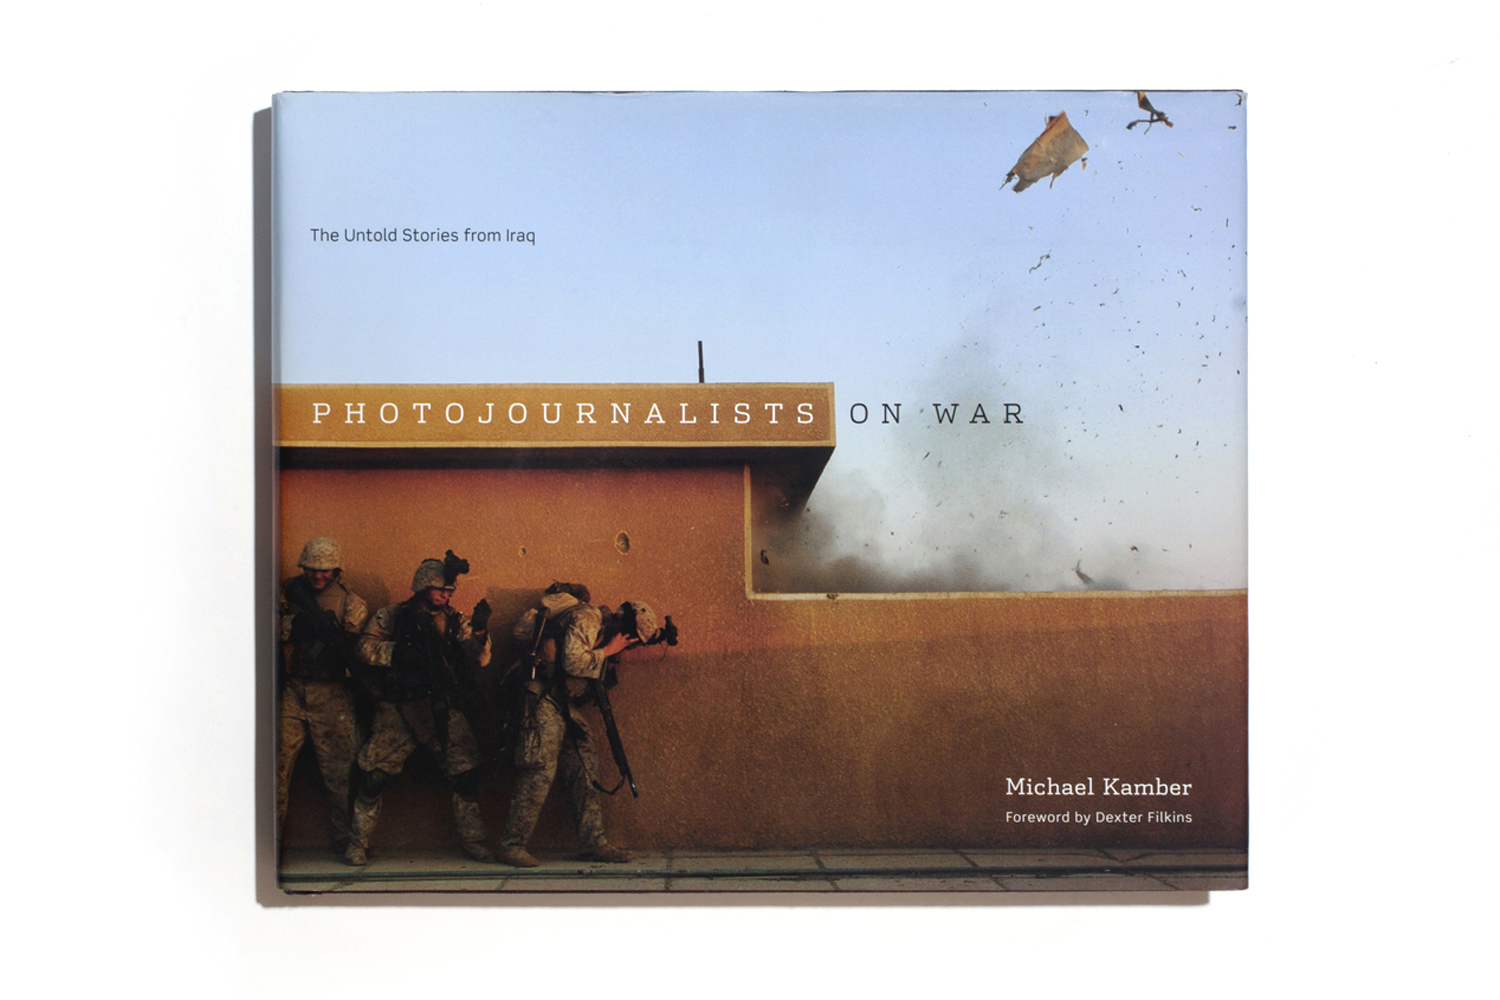 Photojournalists on War: The Untold Stories from Iraq by Michael Kamber, published by University of Texas Press, selected by Patrick Witty, international picture editor, TIME.